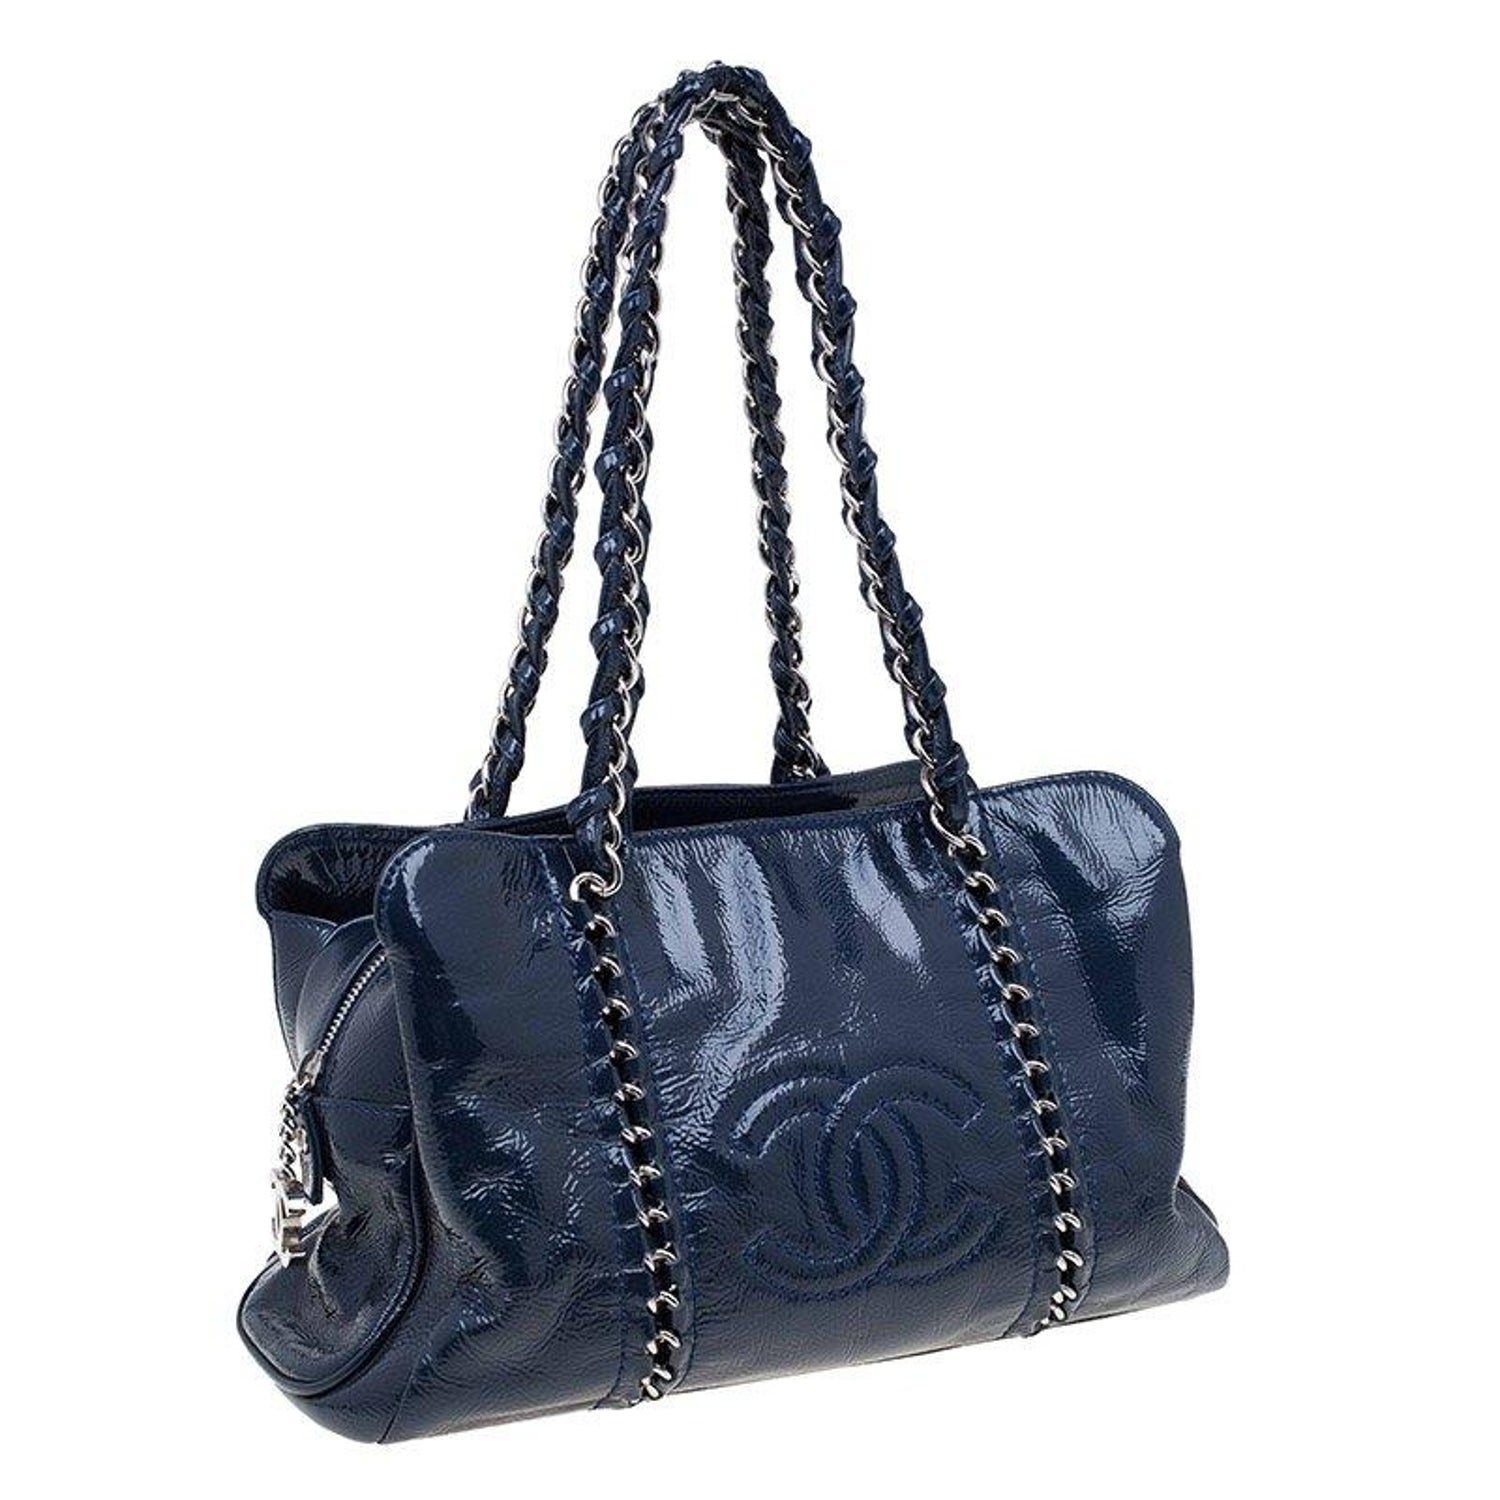 ce9e1a5c931511 Chanel Navy Blue Glazed Leather Modern Chain Tote at 1stdibs